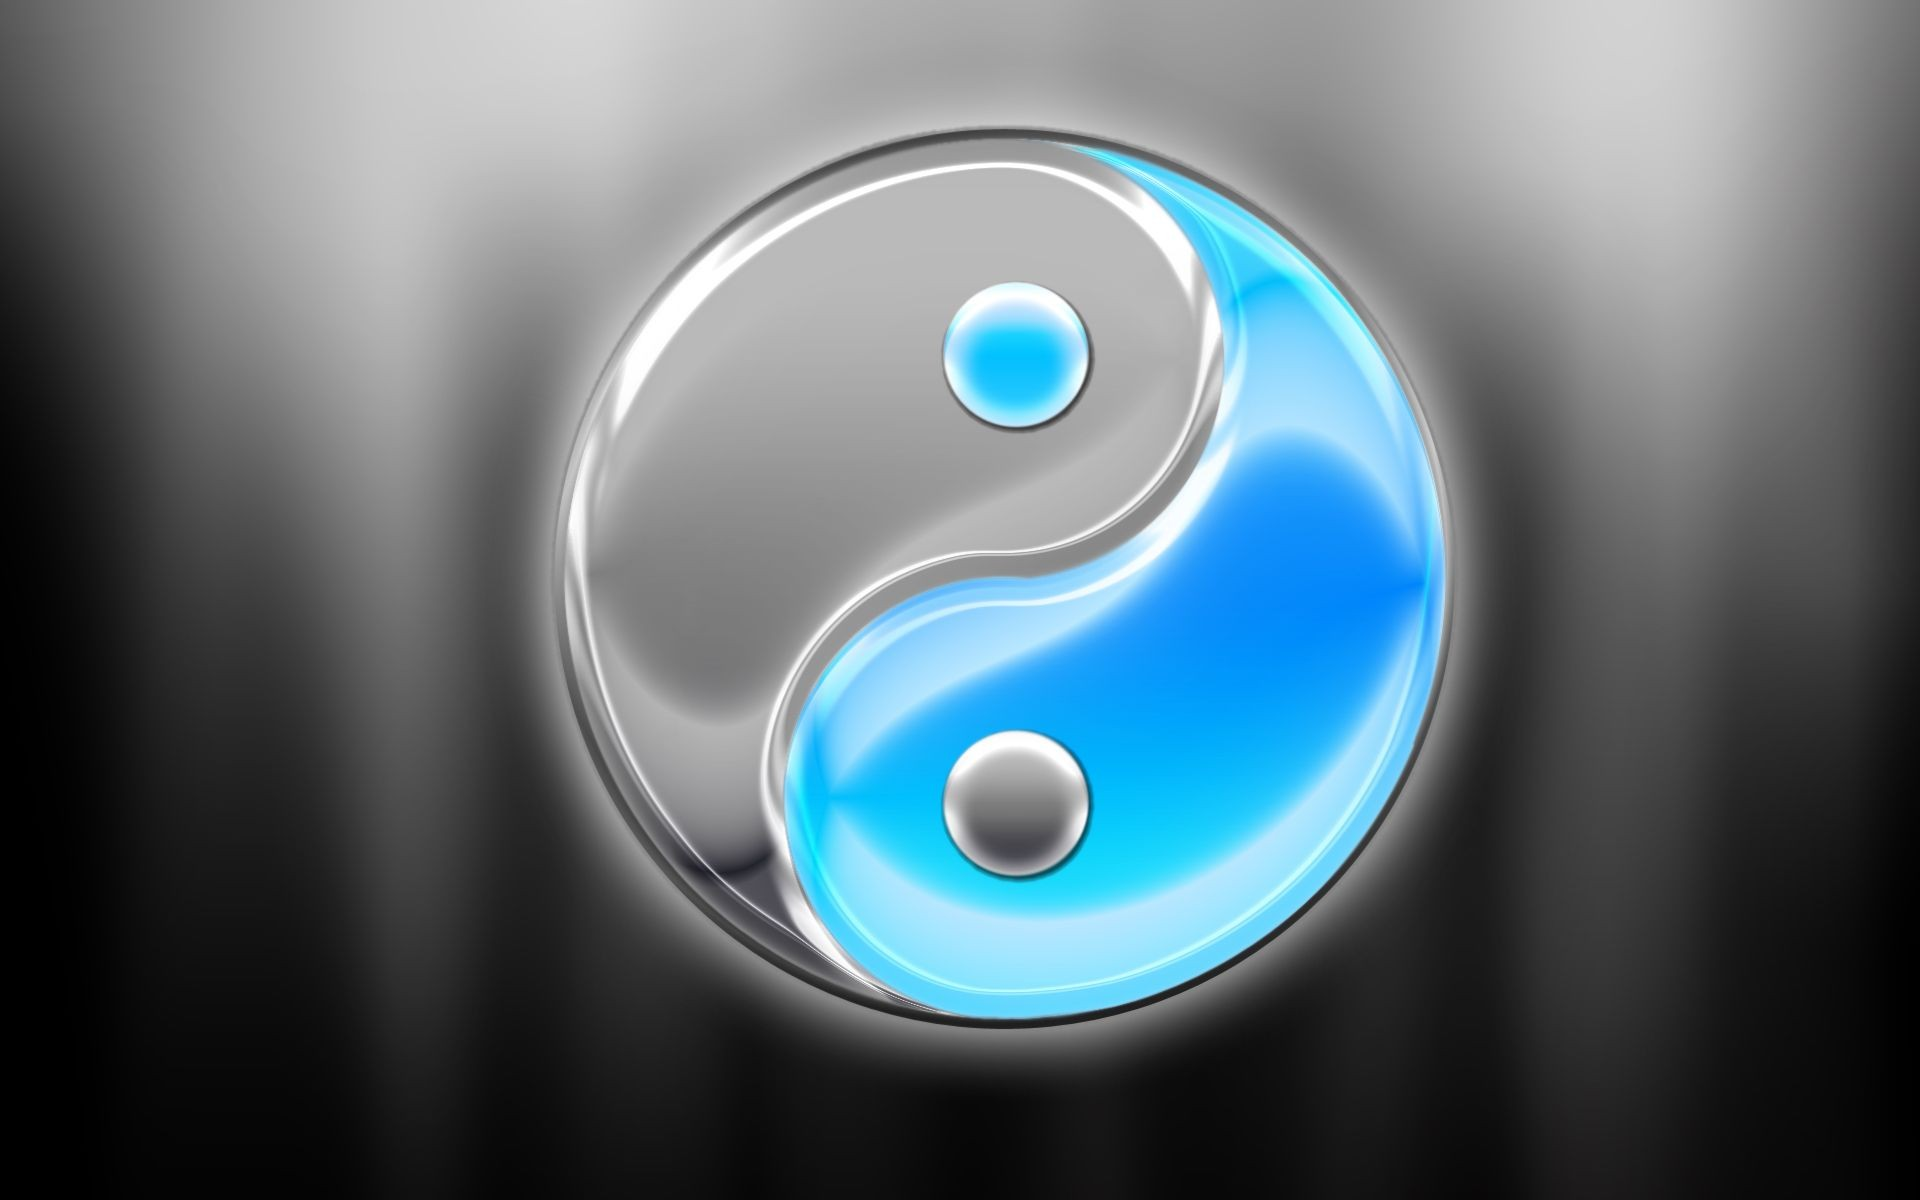 Yin Yang Wallpaper Download Free Amazing Backgrounds For Desktop